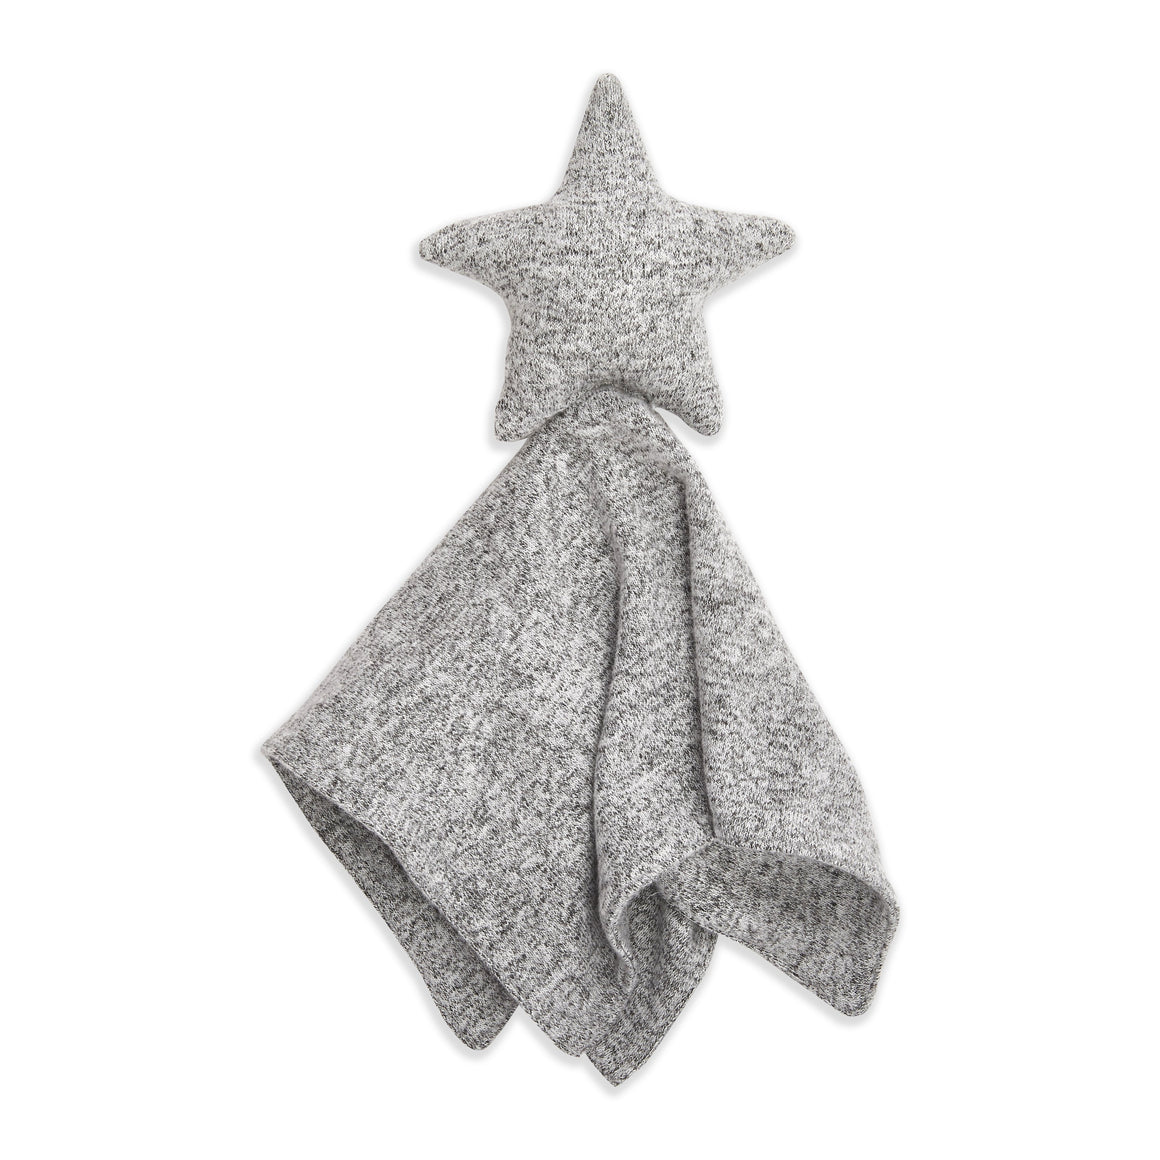 aden+anais snuggle knit lovey - heather grey